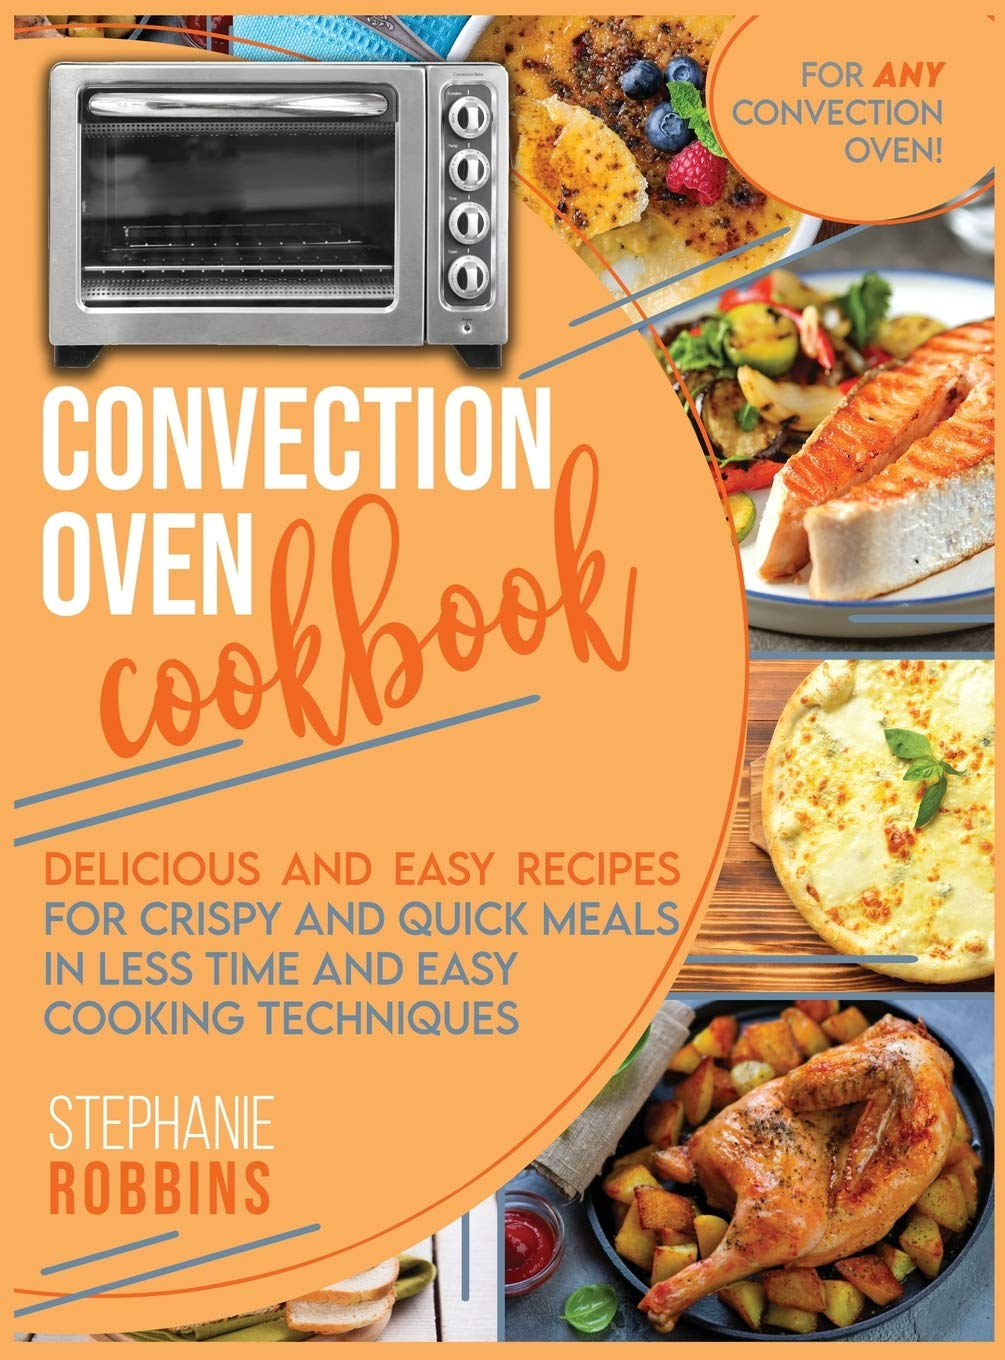 Convection Oven Cookbook Delicious And Easy Recipes For Crispy And Quick Meals In Less Time And Easy Cooking Techniques For Any Convection Oven Robbins Stephanie 9781801444231 Amazon Com Books